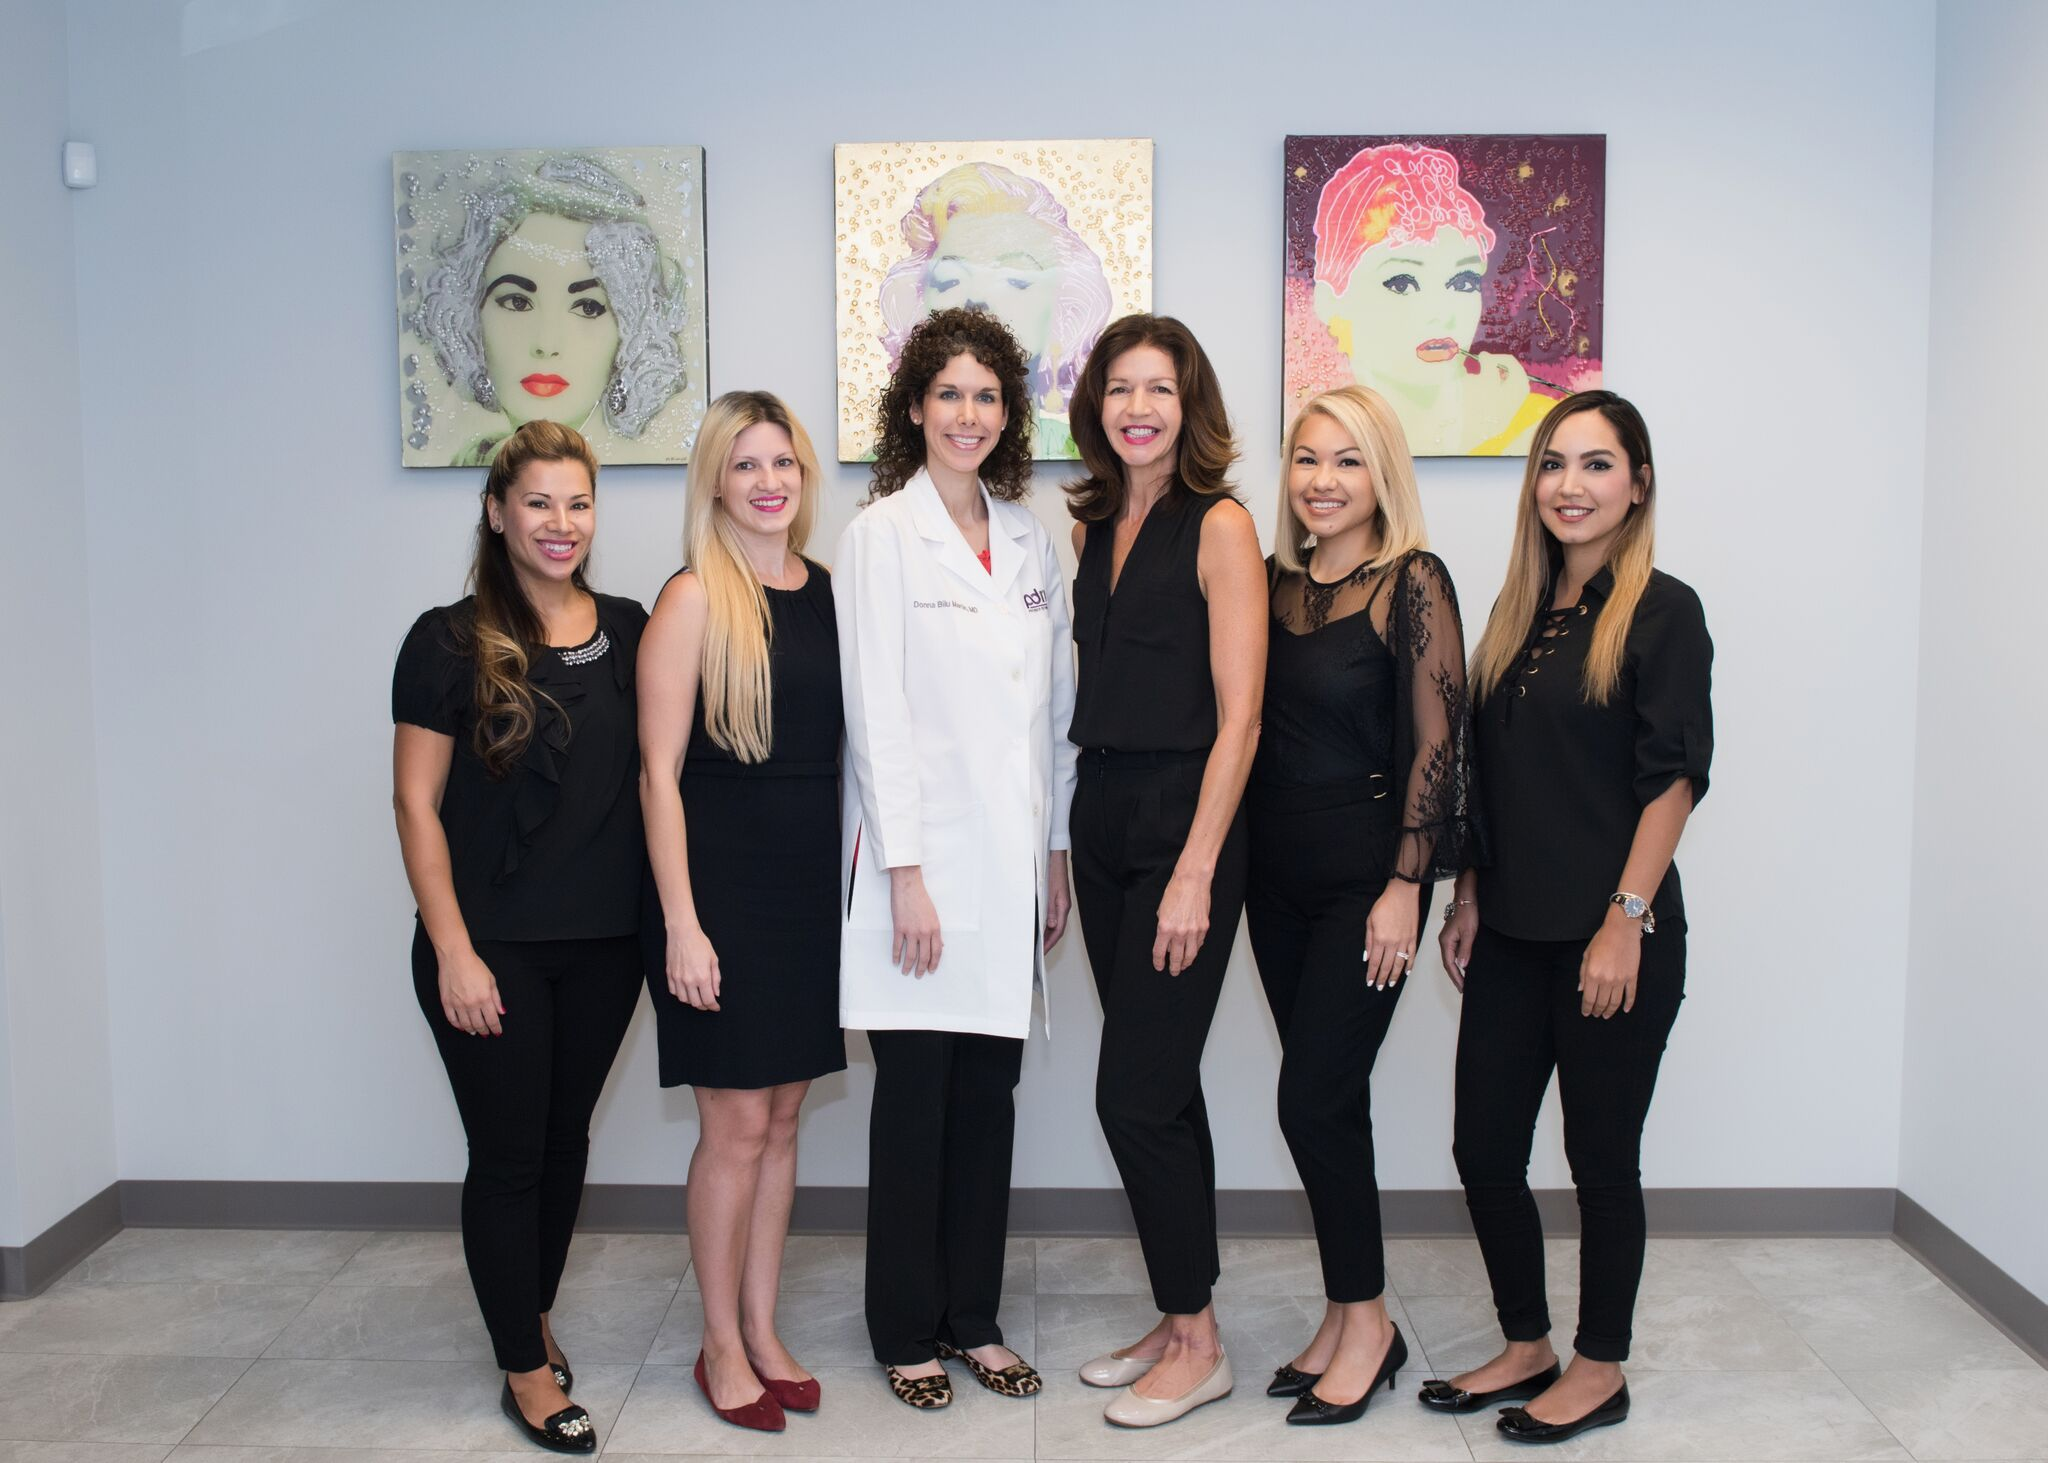 The fabulous staff at Premier Dermatology, MD